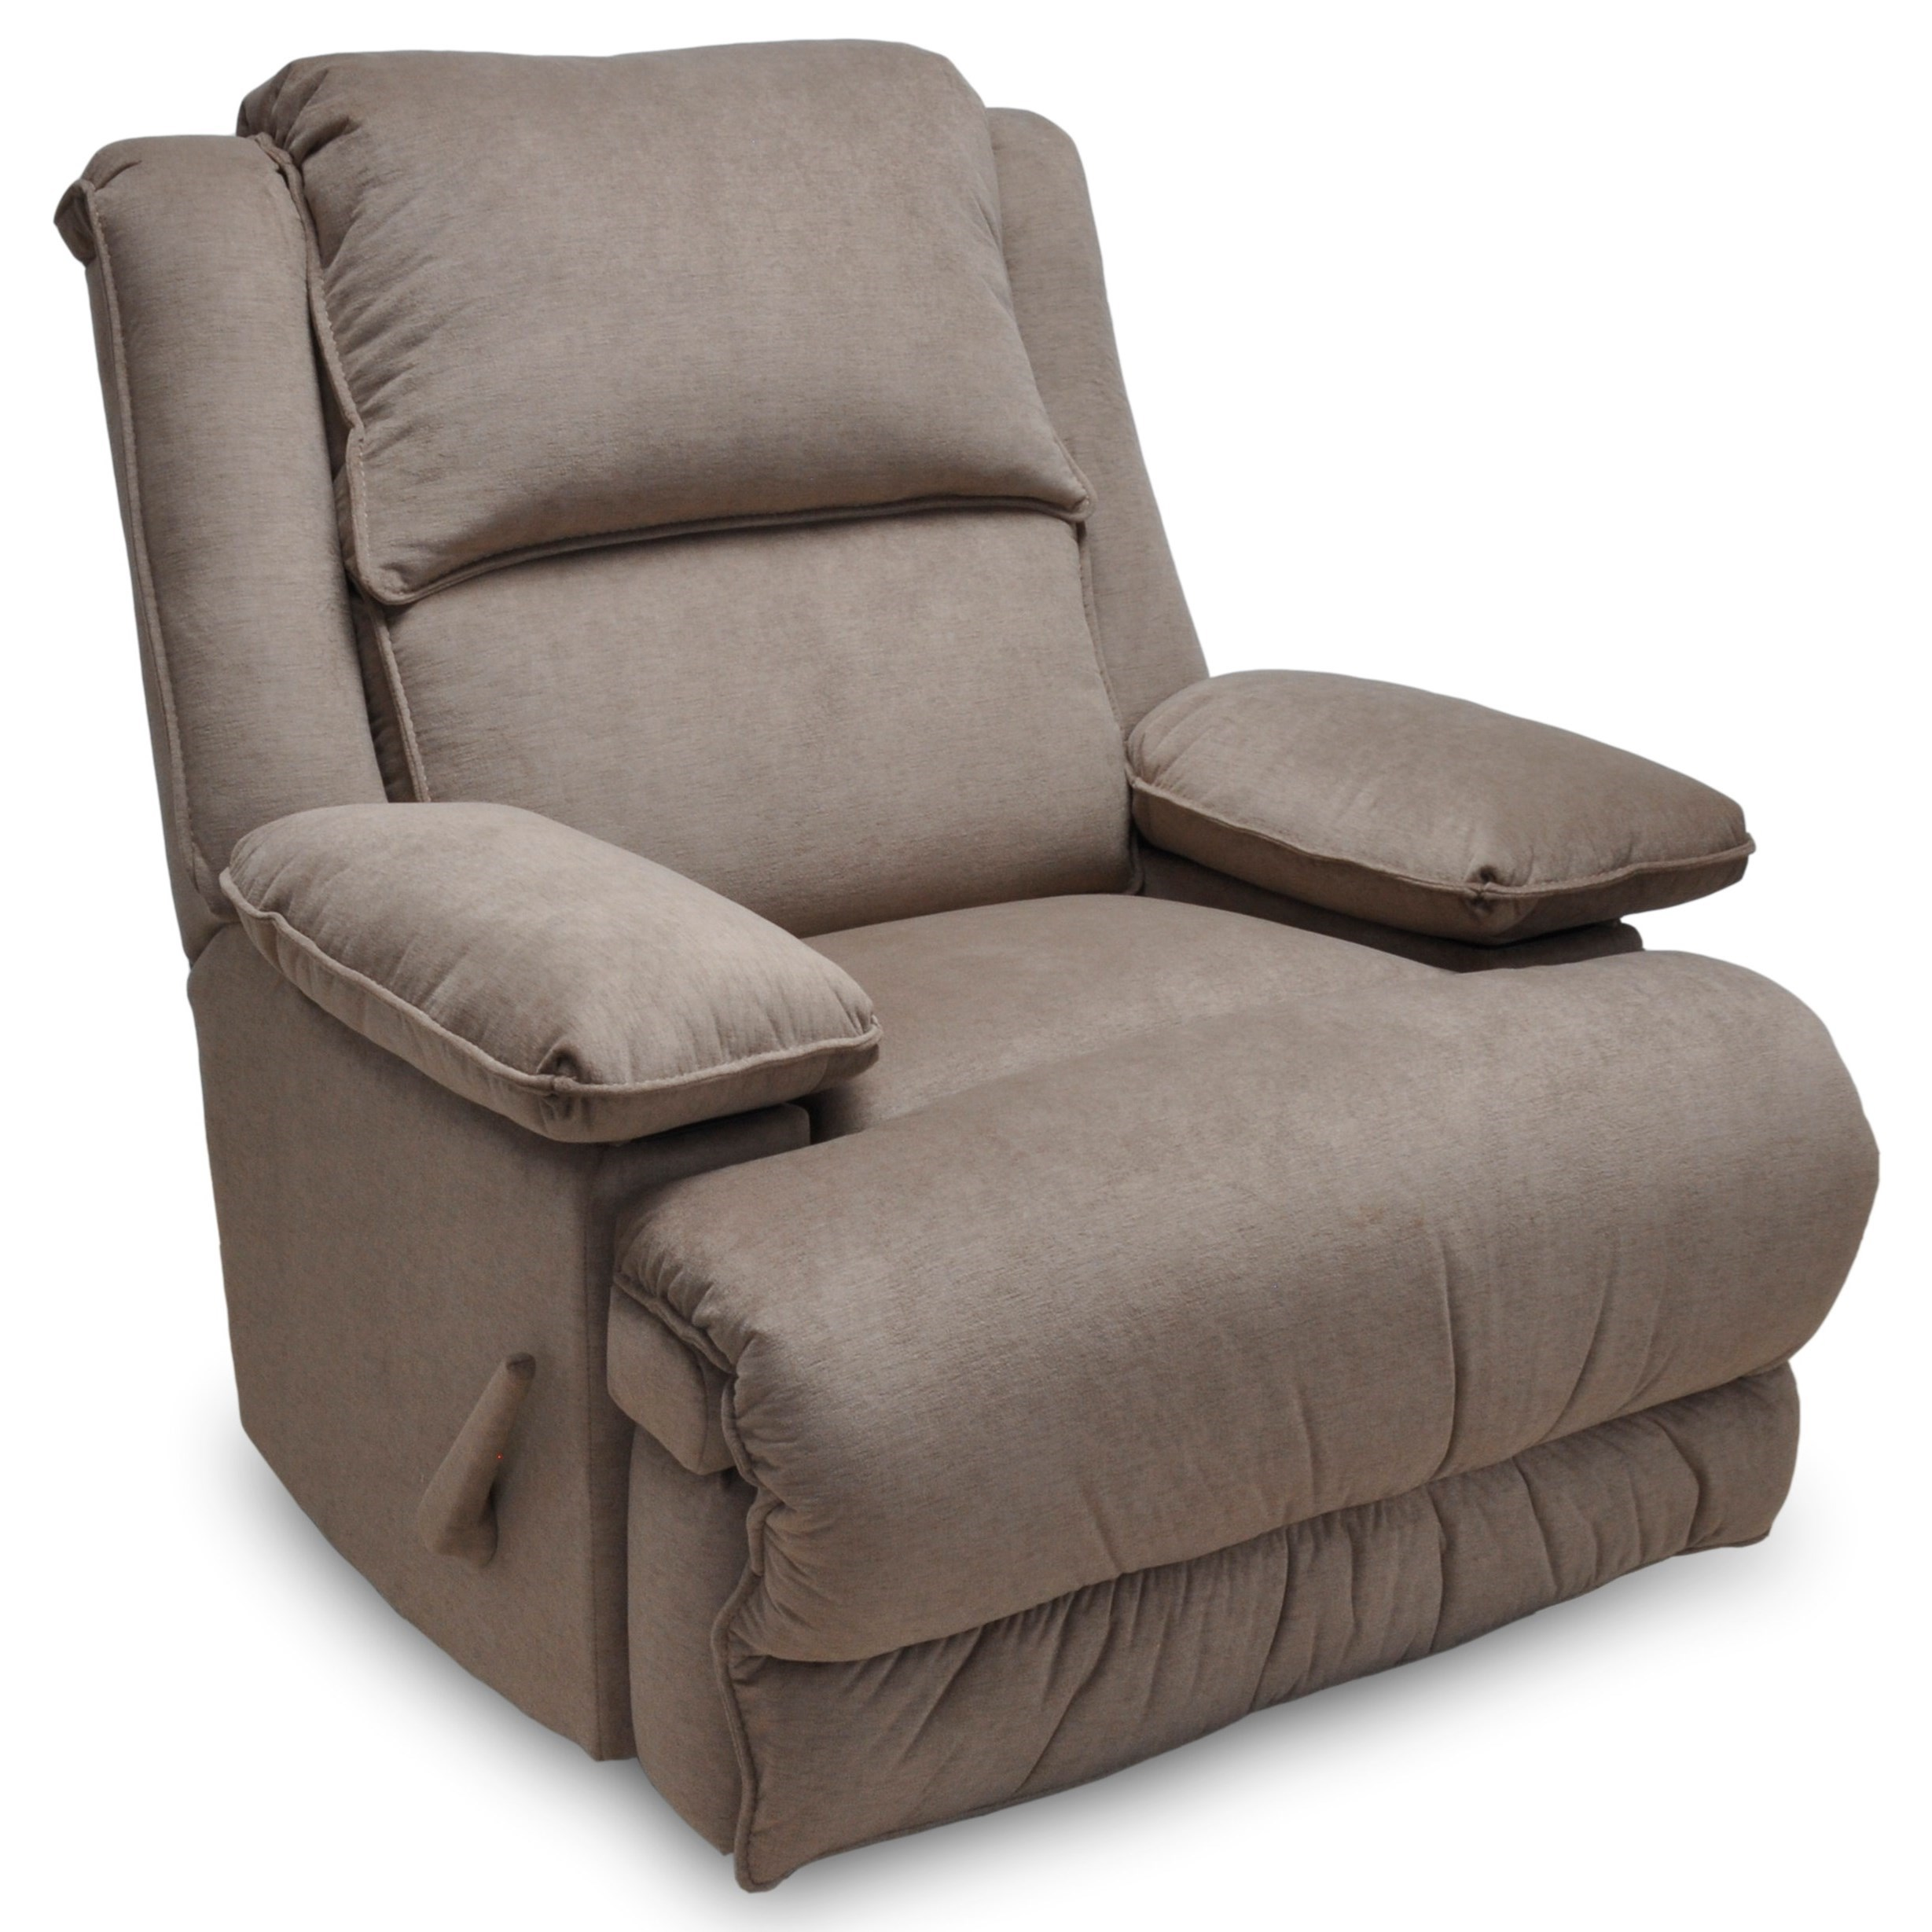 Franklin Recliners Kingston Pwr Rocker Recline w/ Massage & USB by Franklin at Story & Lee Furniture